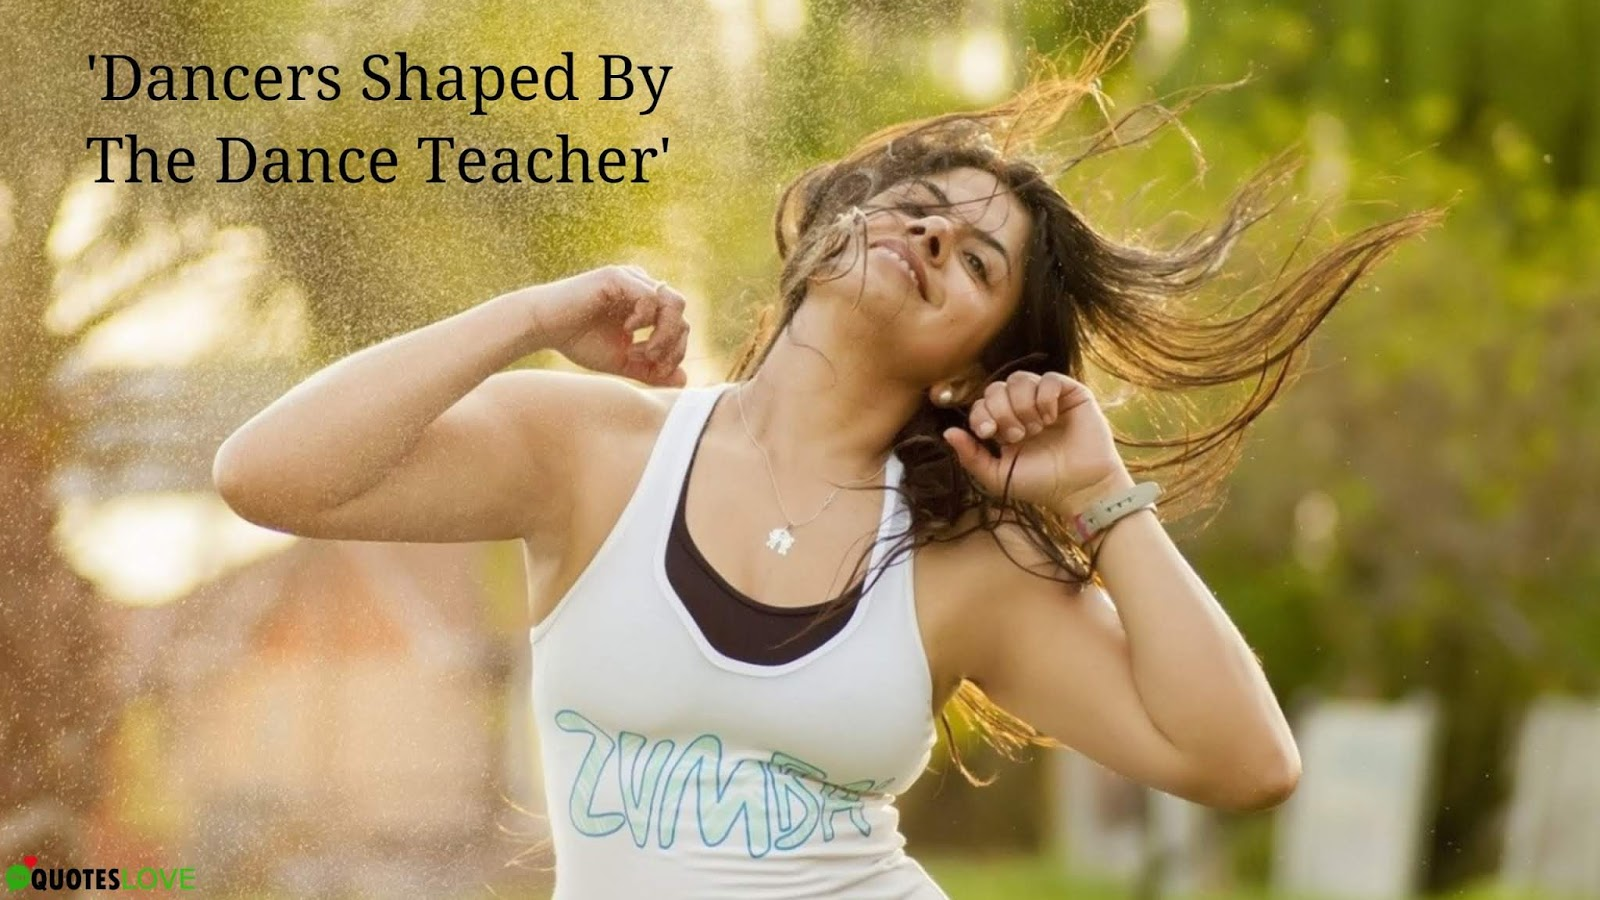 (Best) Dance Teacher Quotes To Inspire Someone